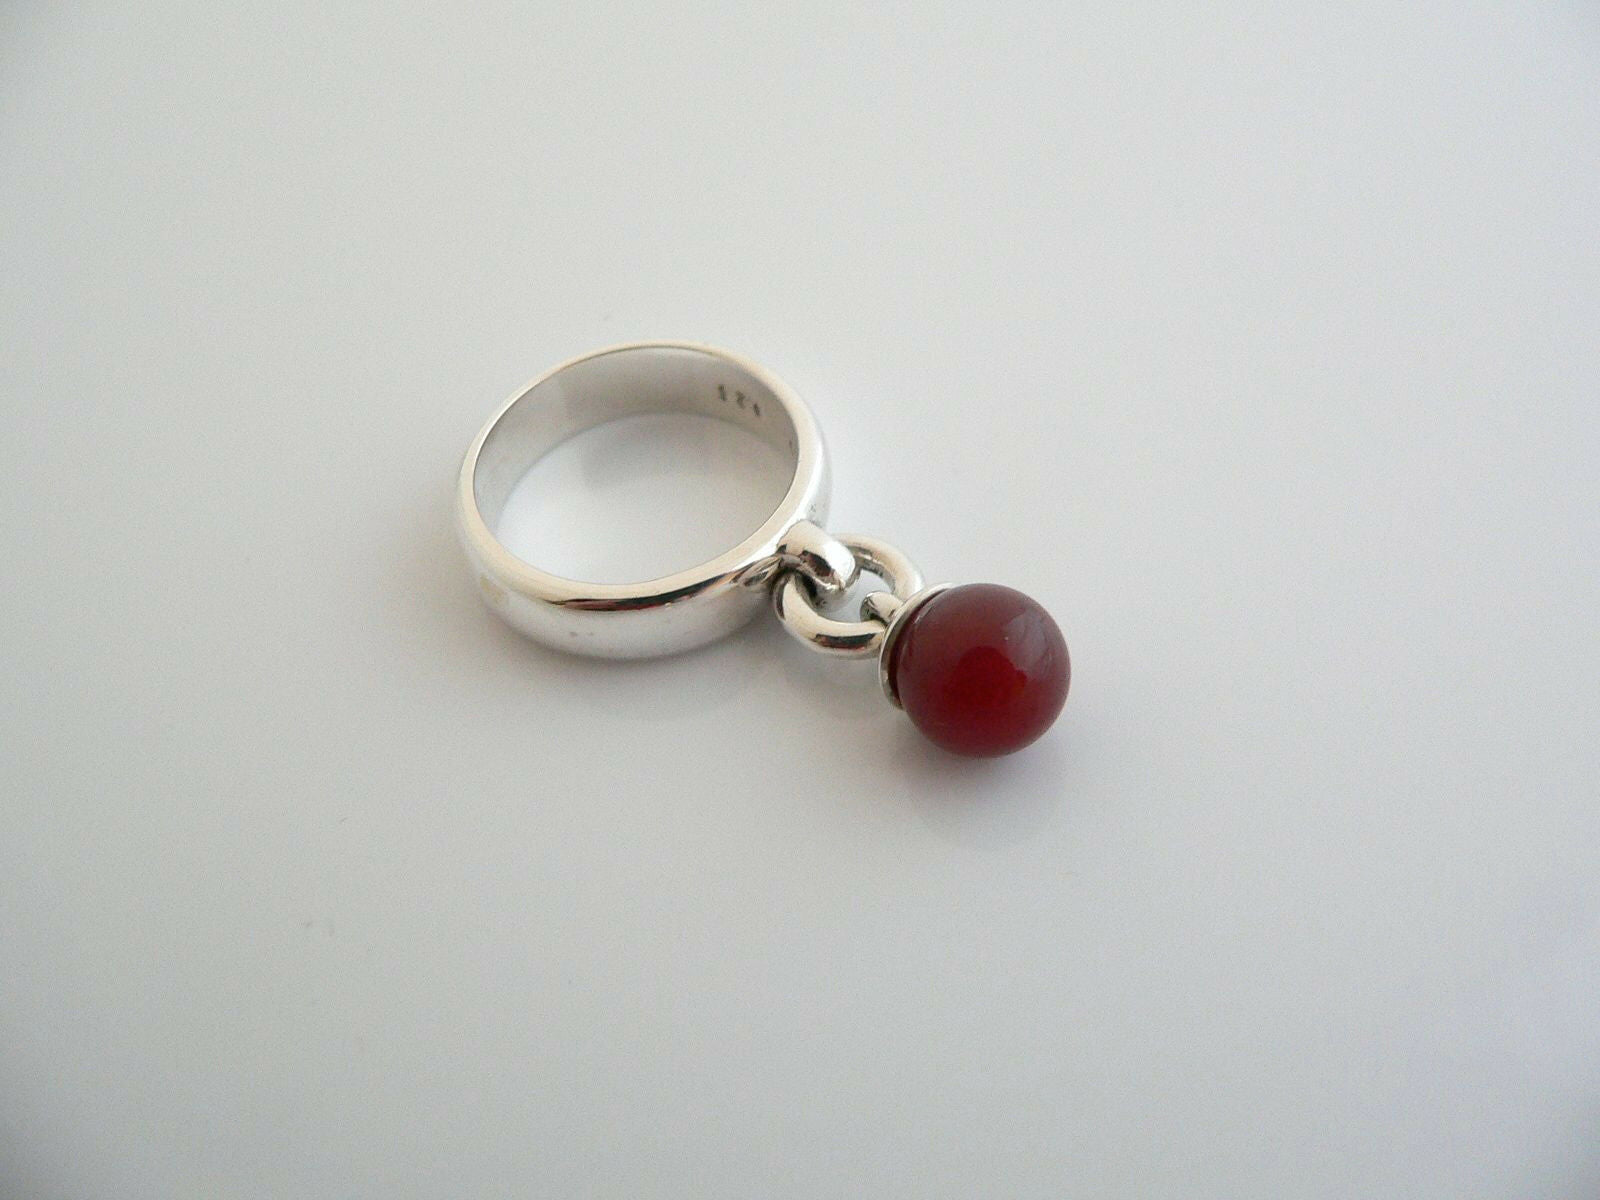 Tiffany & Co Silver Carnelian Fascination Dangling Dangle Ring Band Sz 6.25 Gift